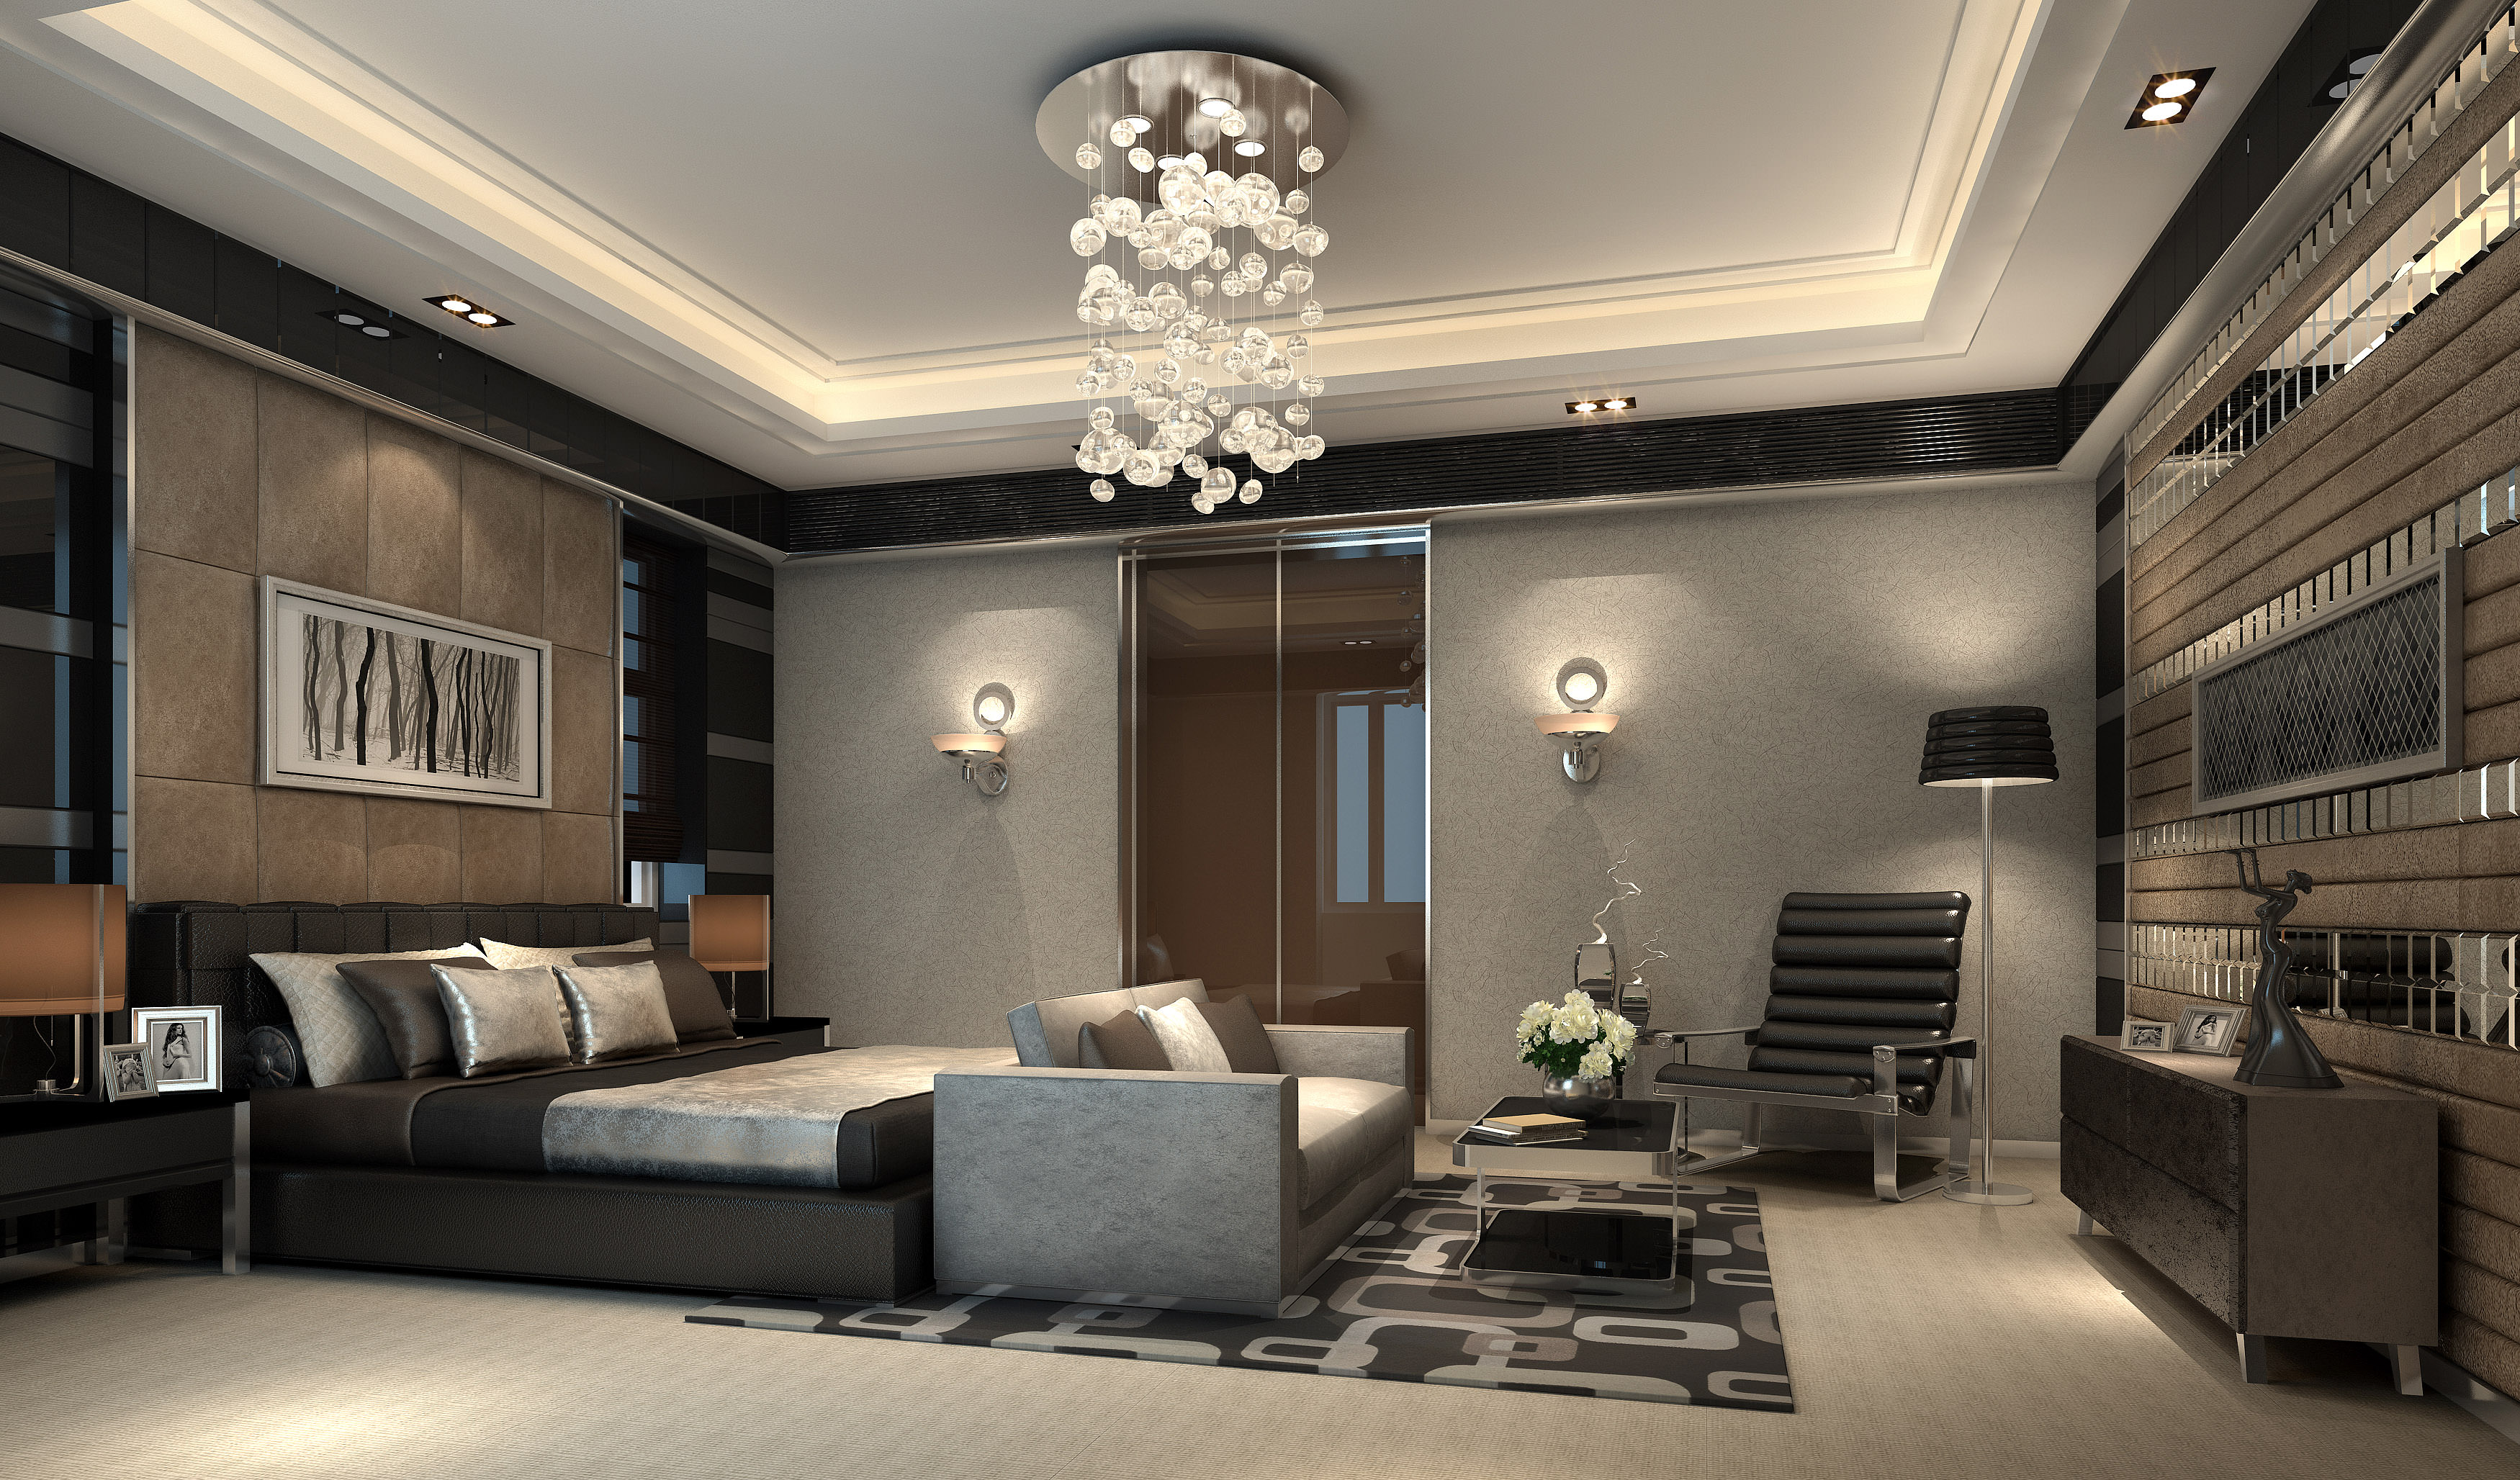 3d living room design anthrinkarts com collection collection modern bedroom fully furnished collection 3d model max 10